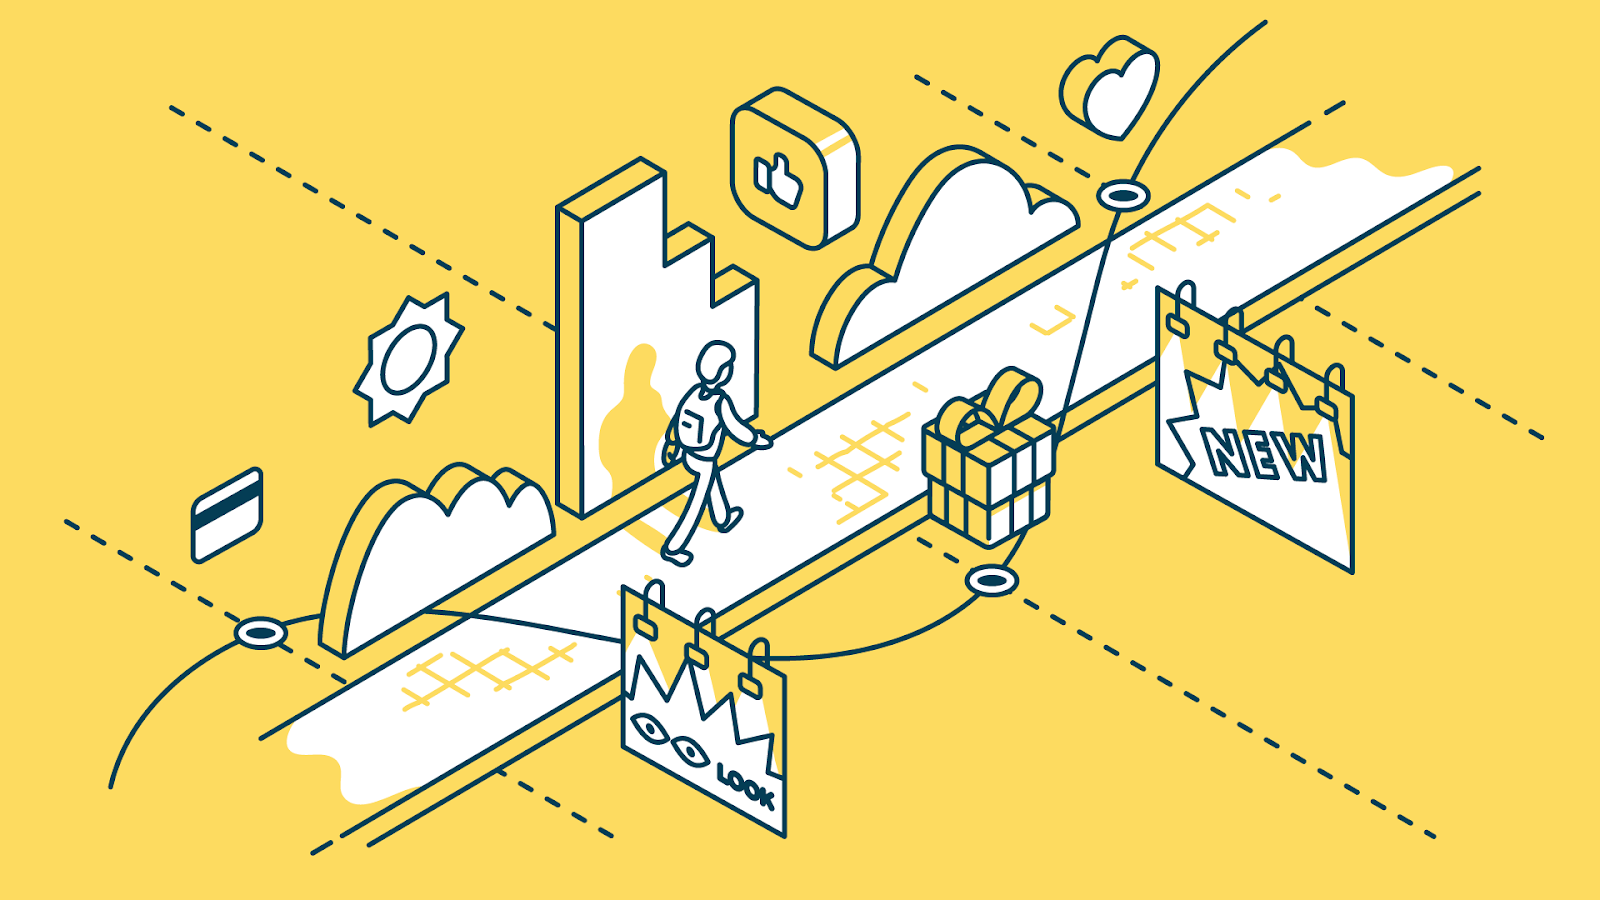 Representation of a customer journey map, shows a person walking on a path with features on either side, showing their path while using the product, which is a representation of a great virtual workshop.